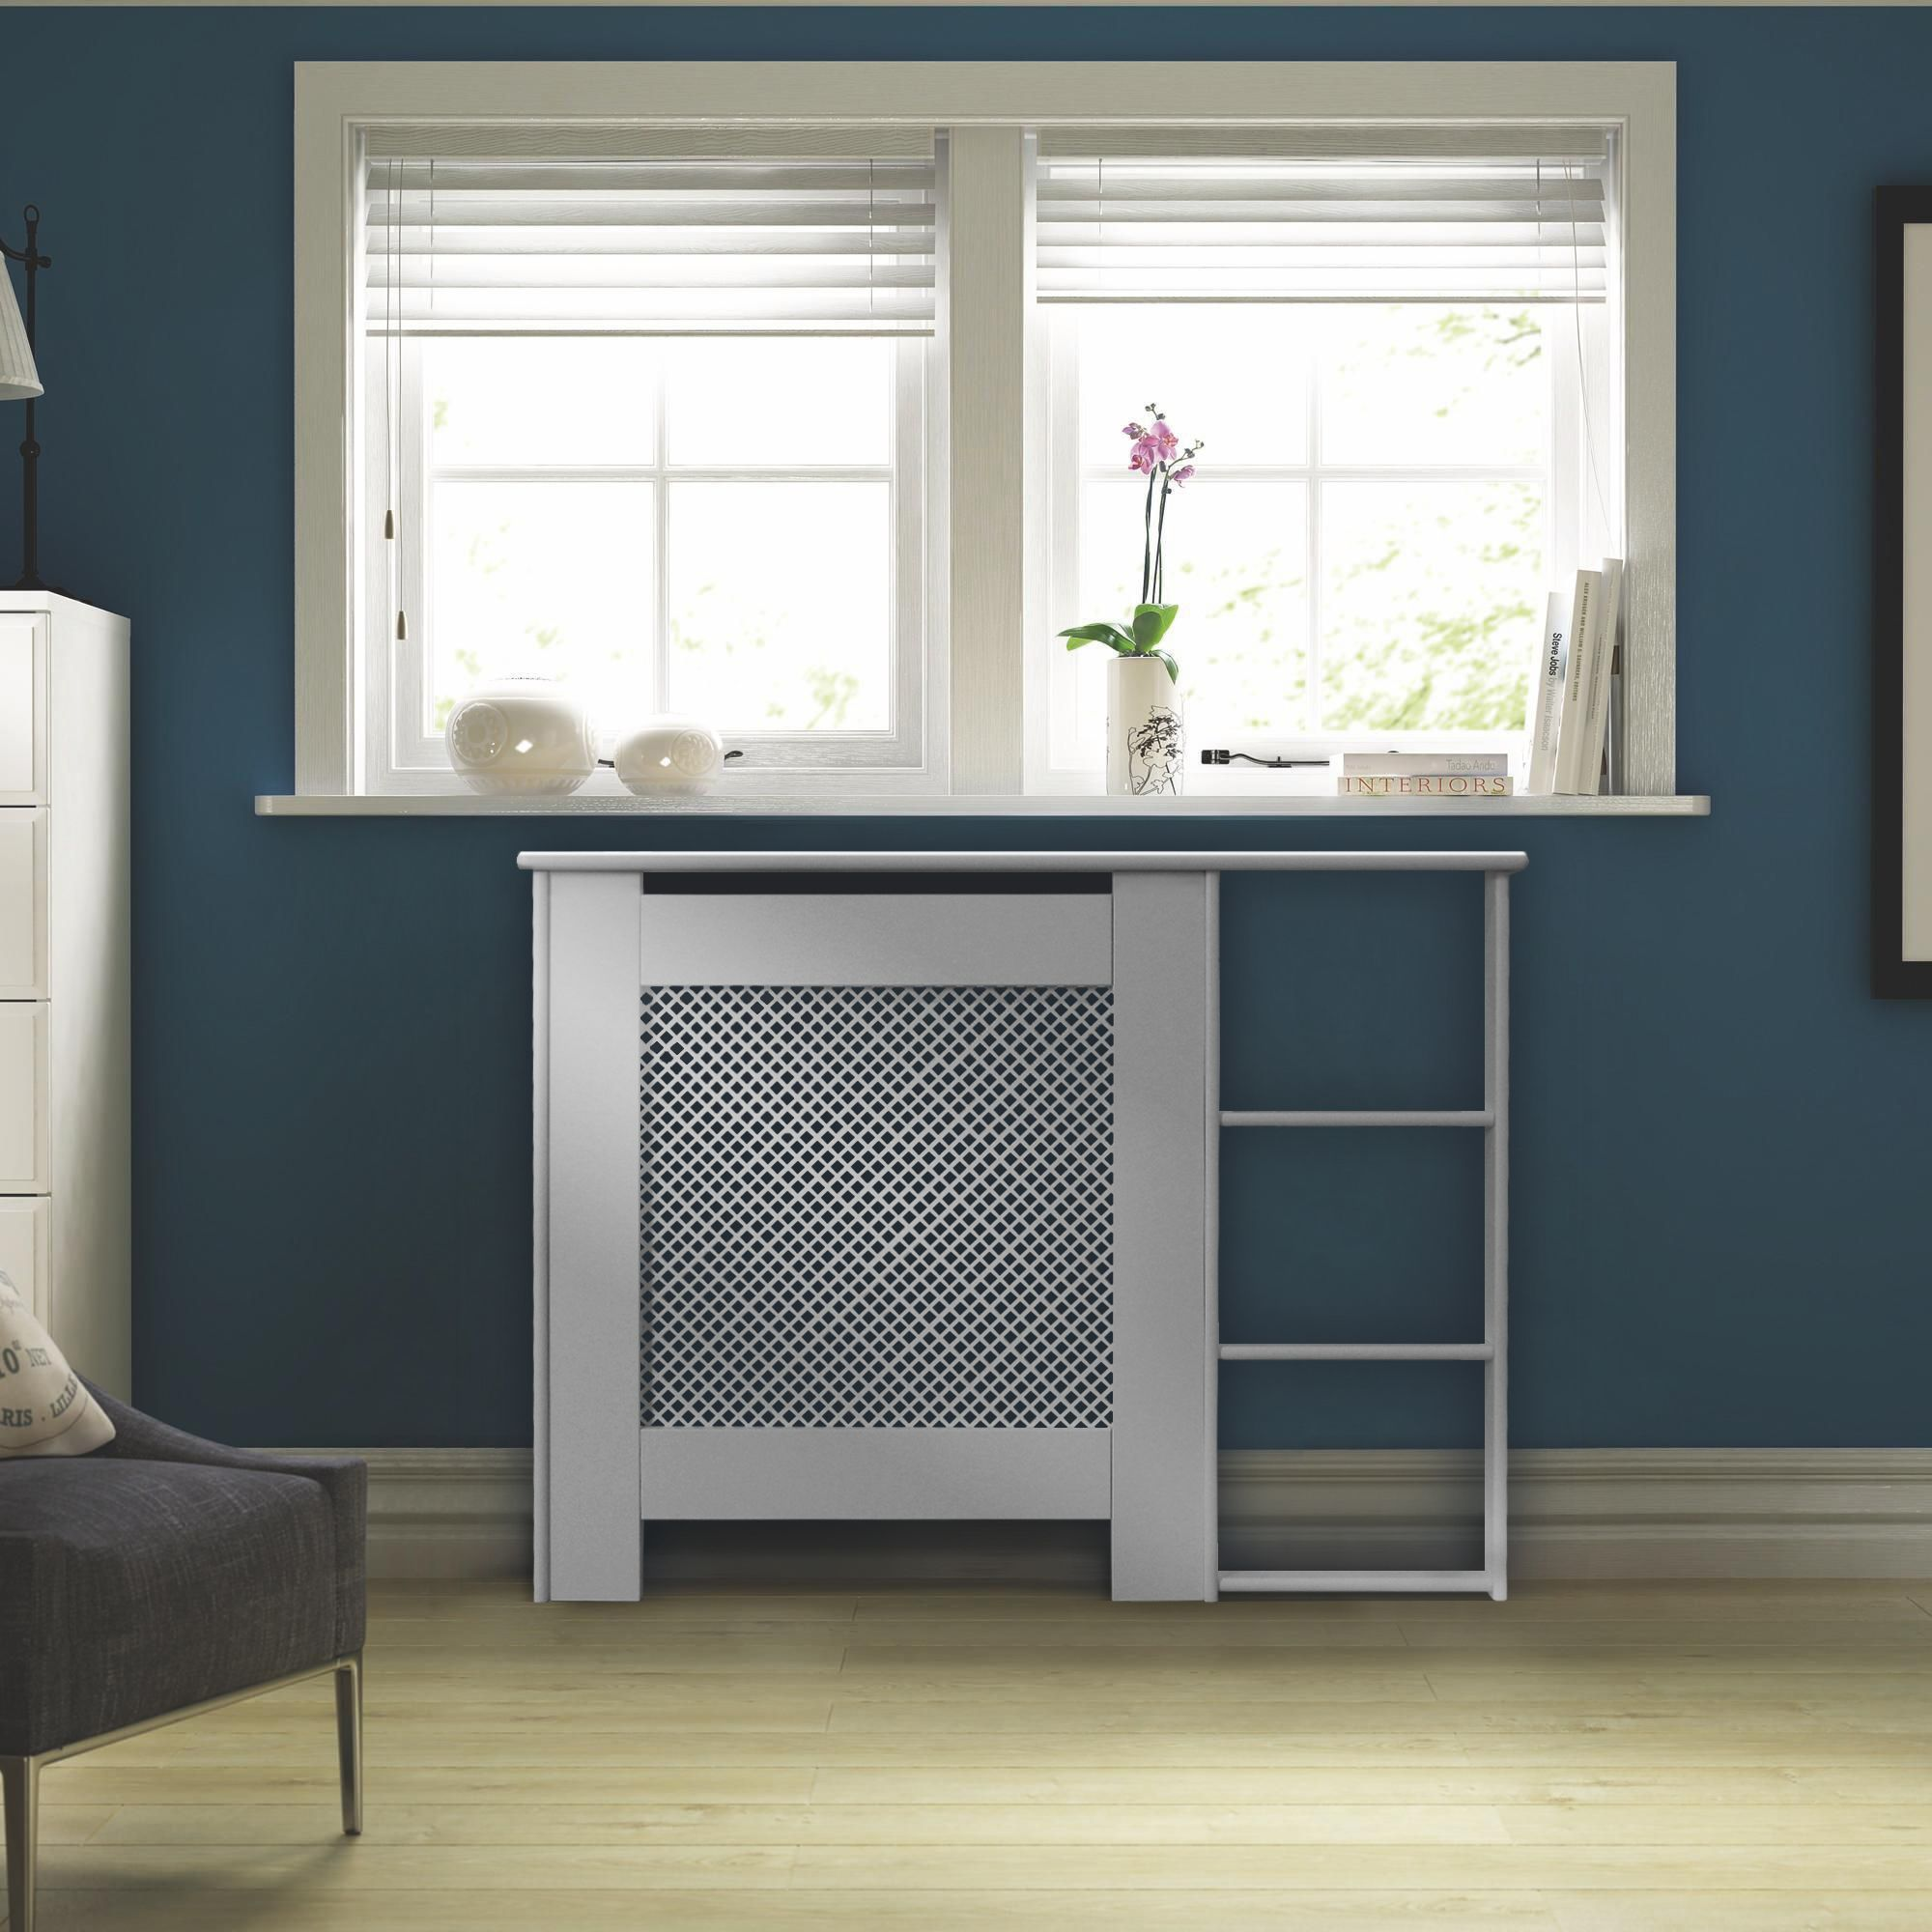 white kitchen appliances cost of renovation mayfair mini painted end shelf radiator cover ...